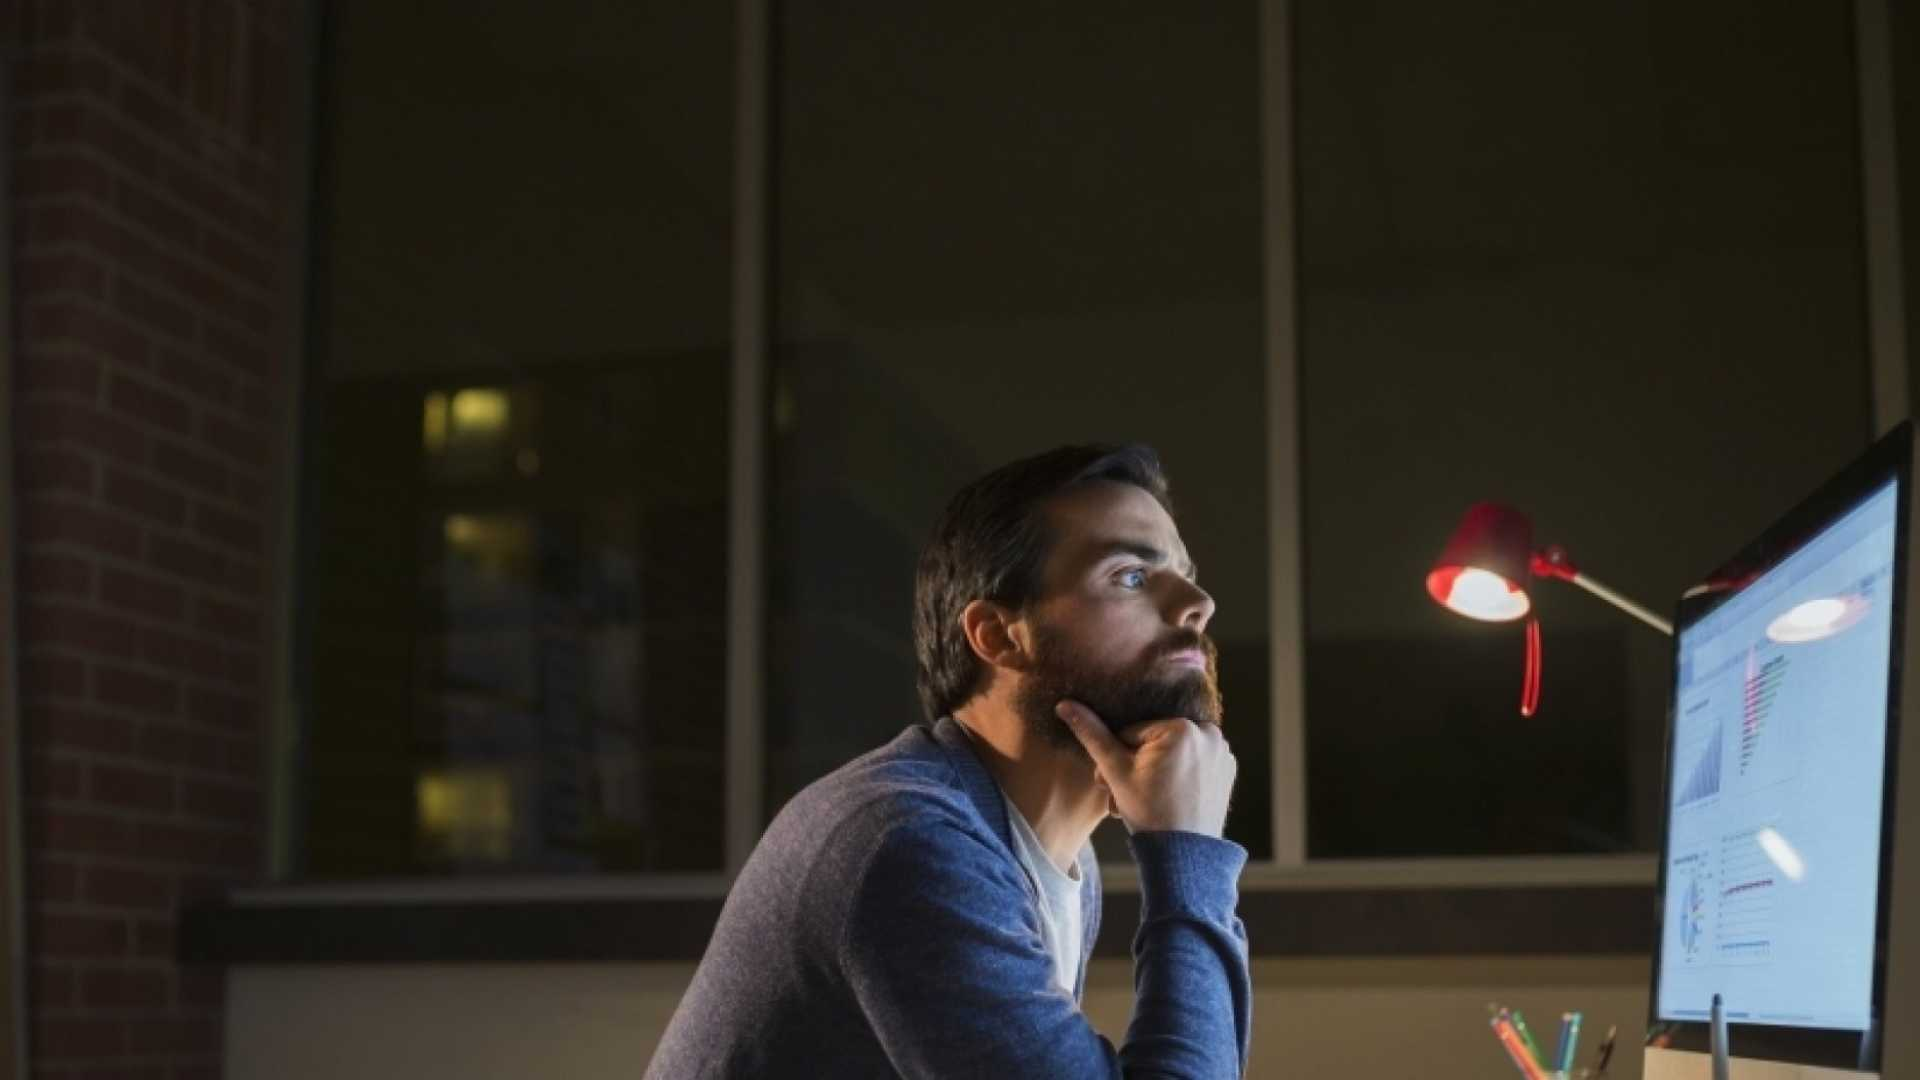 10 Reasons Hard Work Isn't Enough to Make a Business Succeed